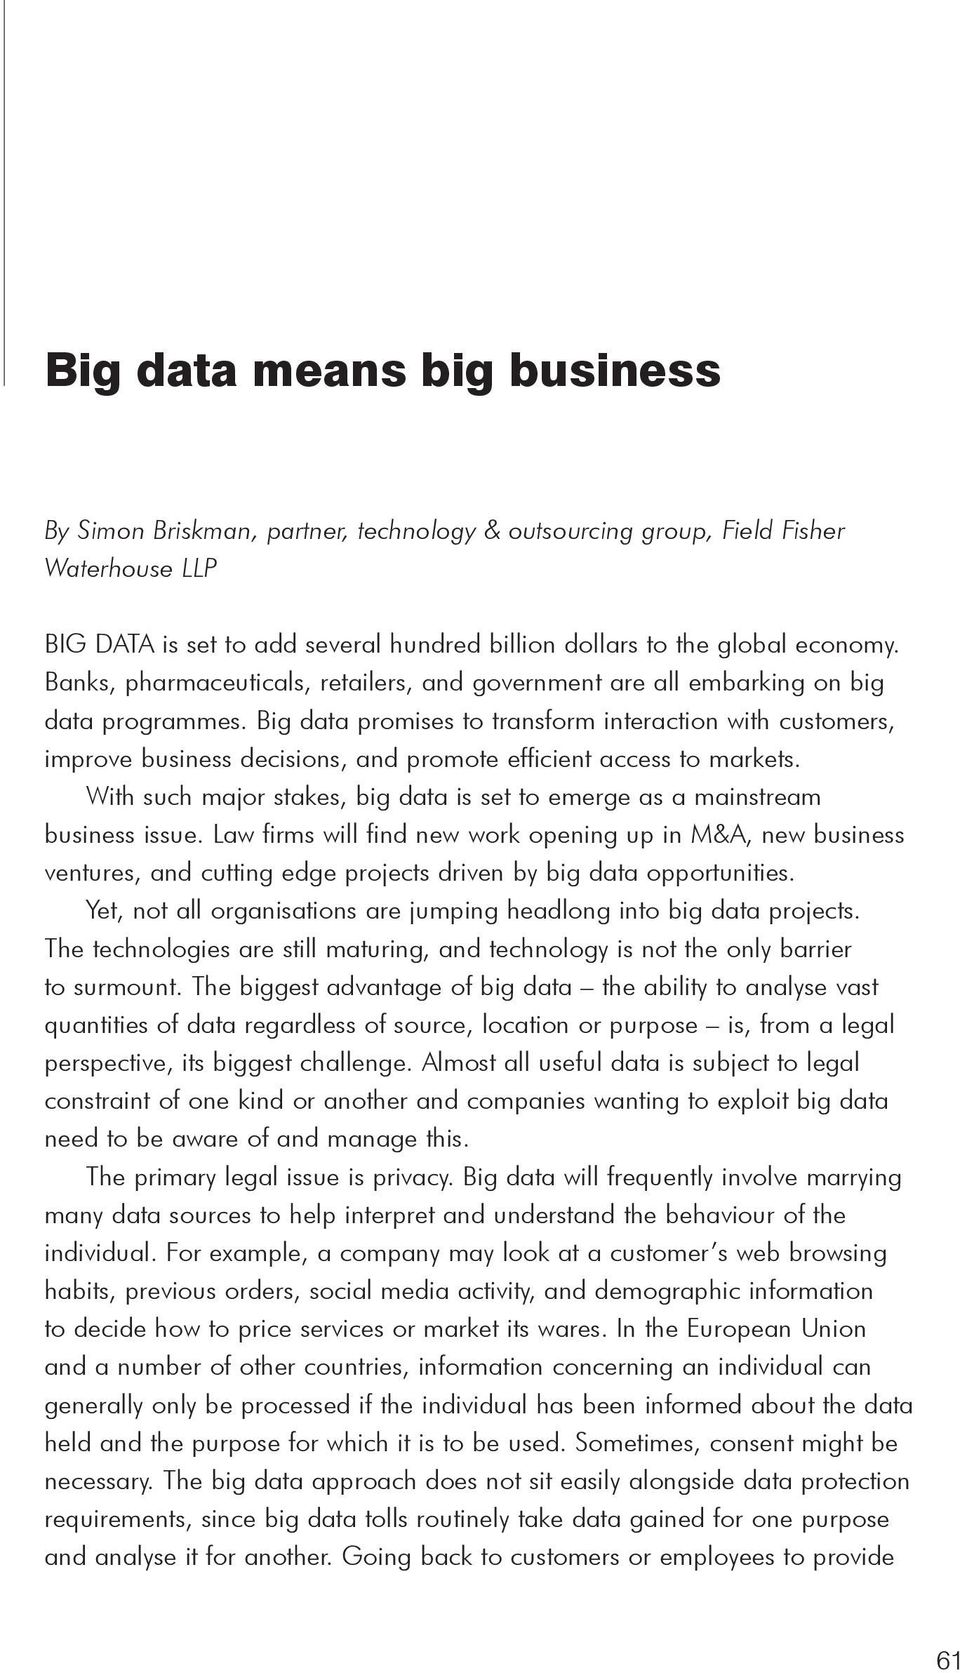 Big data promises to transform interaction with customers, improve business decisions, and promote efficient access to markets.